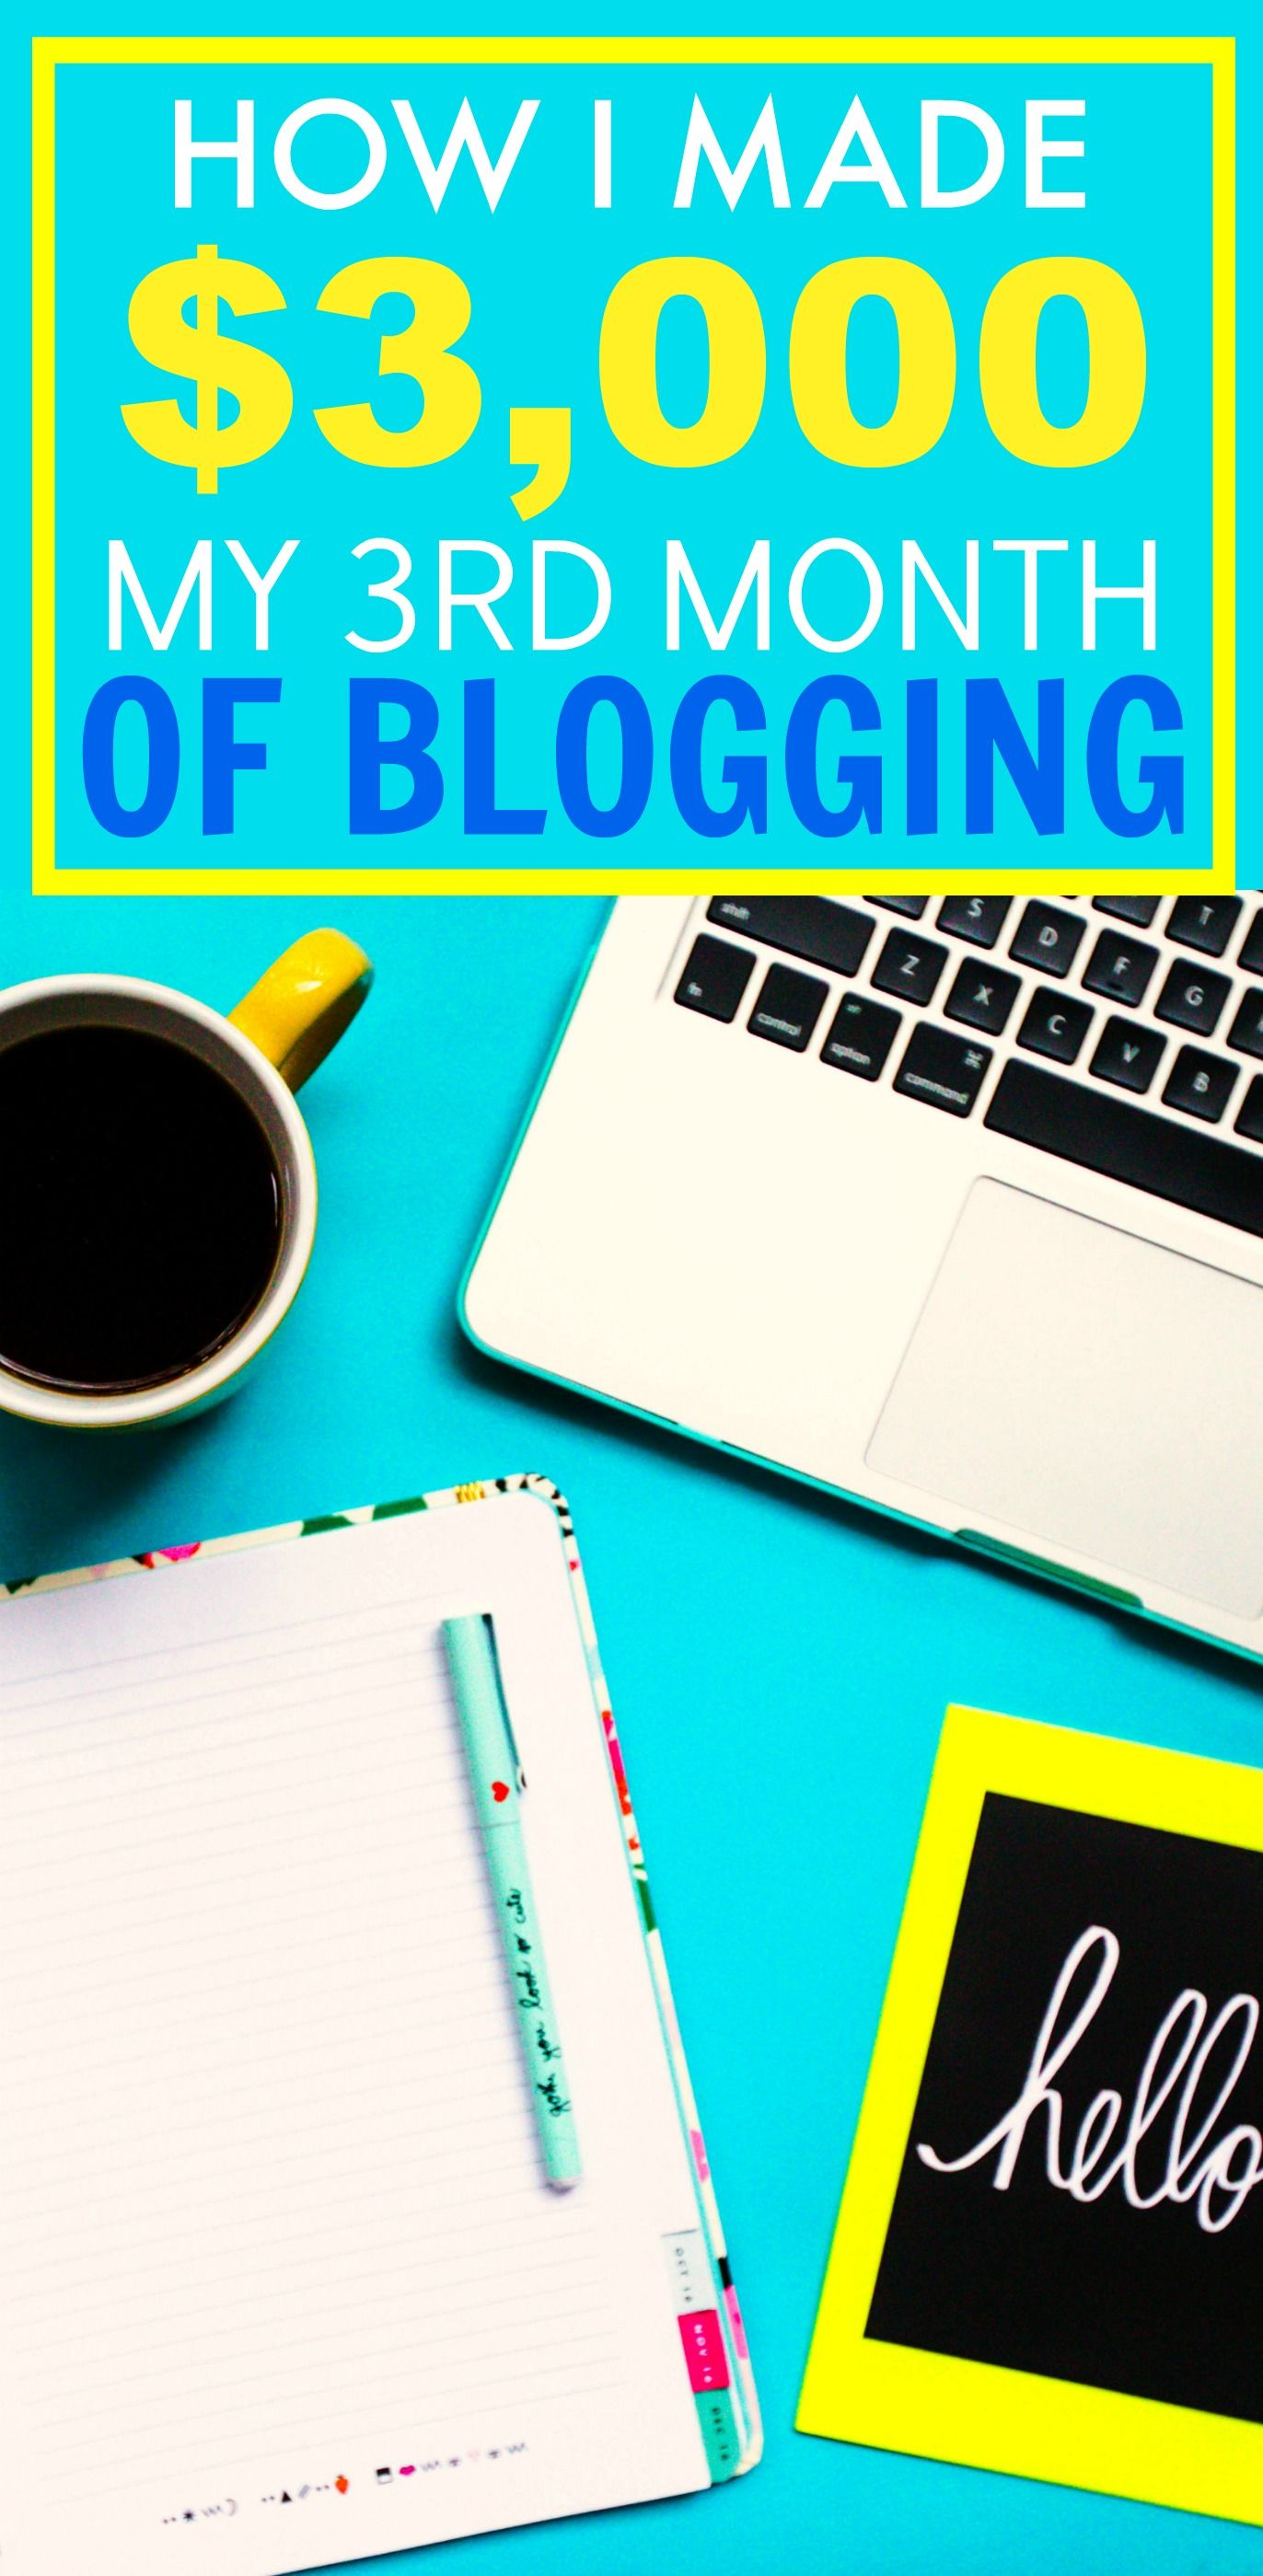 How she made $3k in her 3rd month of blogging is AMAZING! I'm so inspired and her tips have SERIOUSLY helped me out! My traffic has DOUBLED and so has my income! I'm so happy I found this post! SO pinning for later!